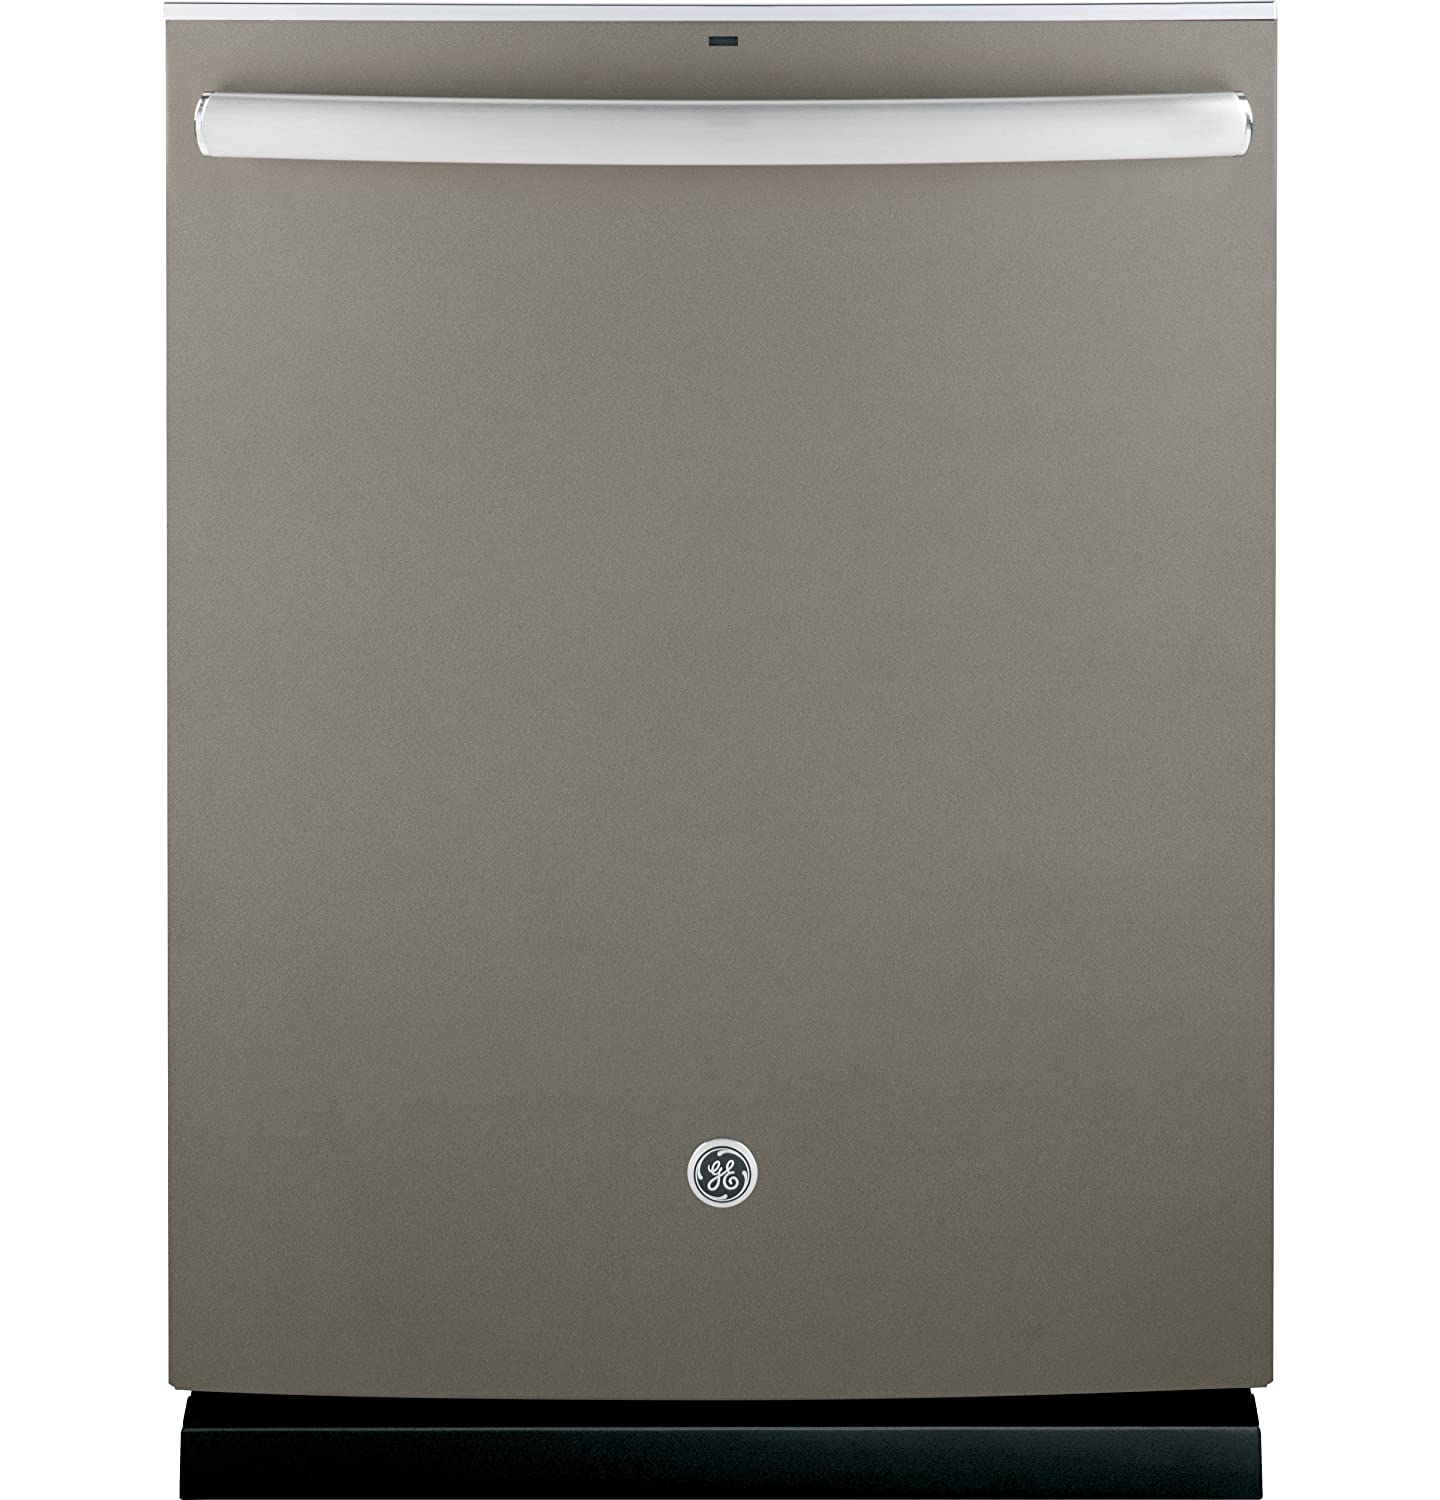 "GE GDT590SMJES 24"" Energy Star Built In Dishwasher with 16 Place Settings in Slate"